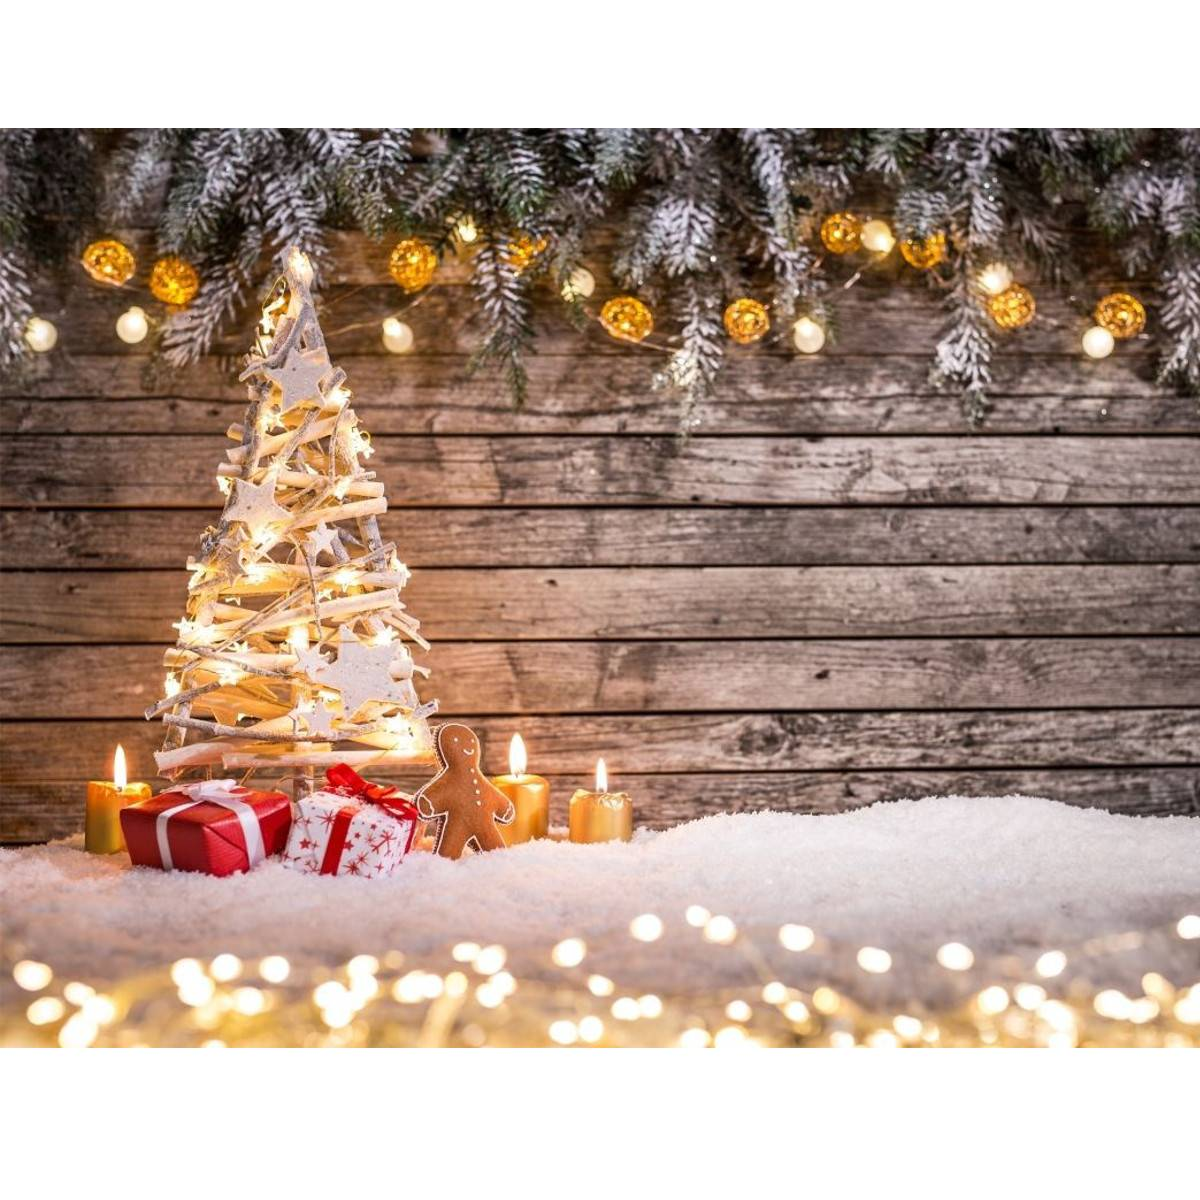 Newchic 7x5FT Christmas Photography Background Props Studio Vinyl Home